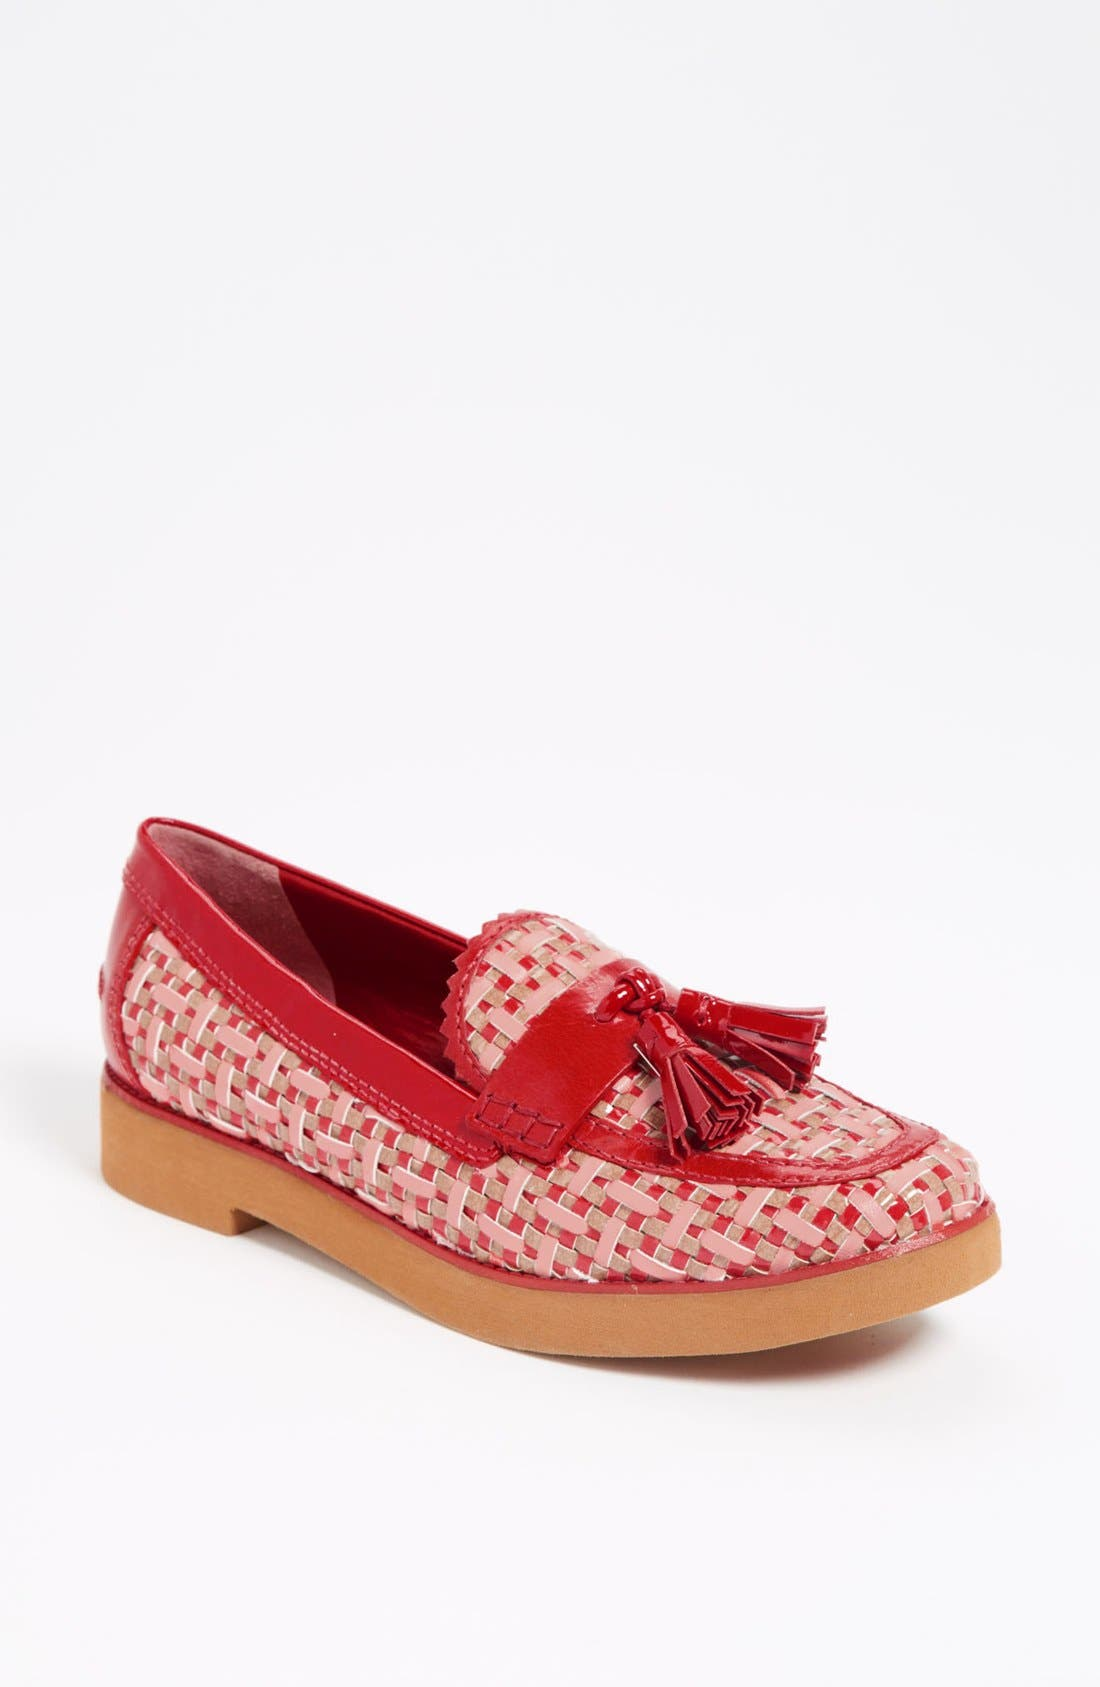 Alternate Image 1 Selected - Tory Burch 'Careen' Loafer